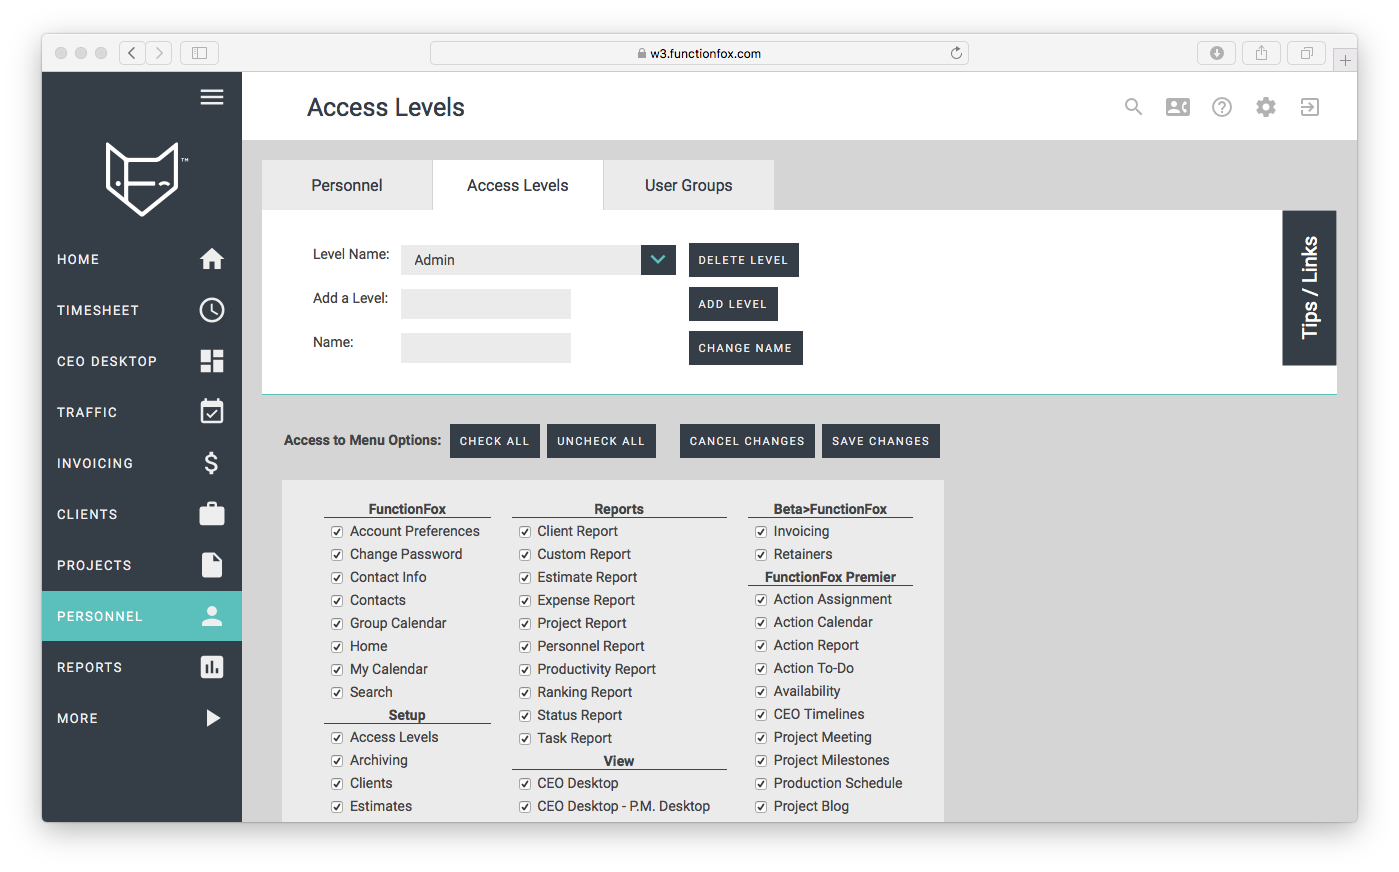 functionfox timesheet screenshot dashboard interface crozdesk access levels user management personnel